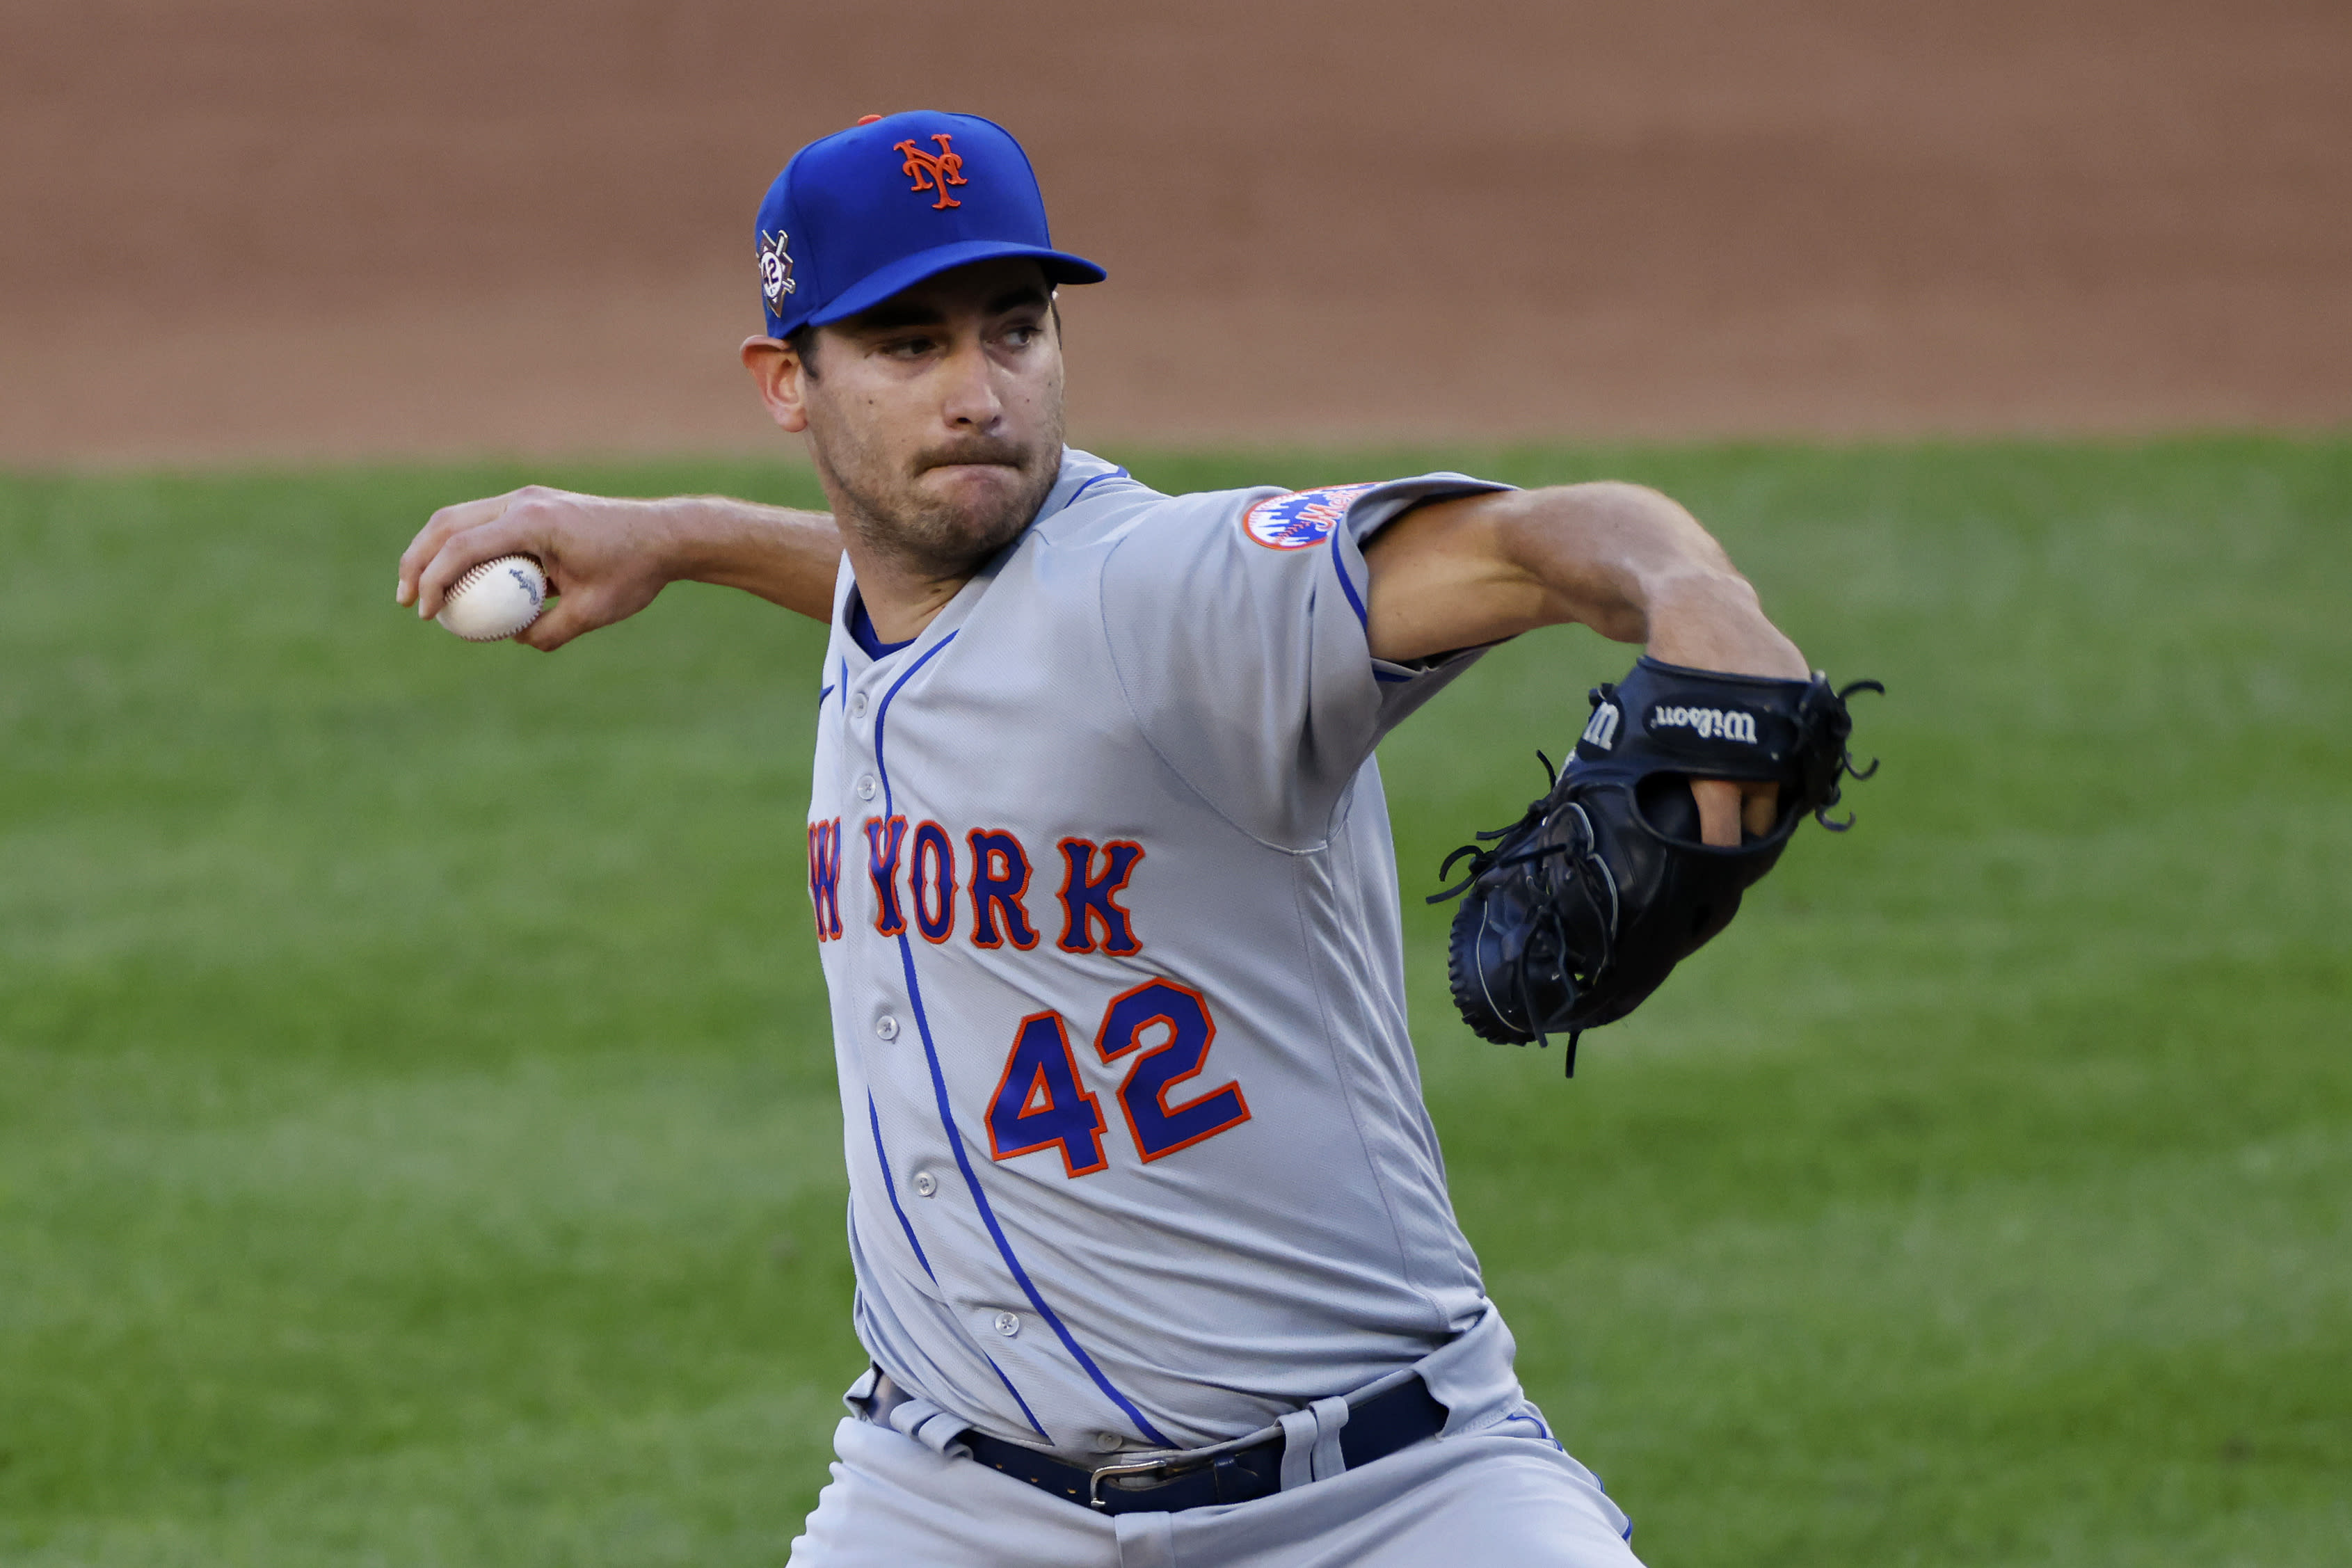 New York Mets pitcher Seth Lugo delivers against the New York Yankees during the third inning of the second baseball game of a doubleheader, Sunday, Aug. 30, 2020, in New York. (AP Photo/Adam Hunger)